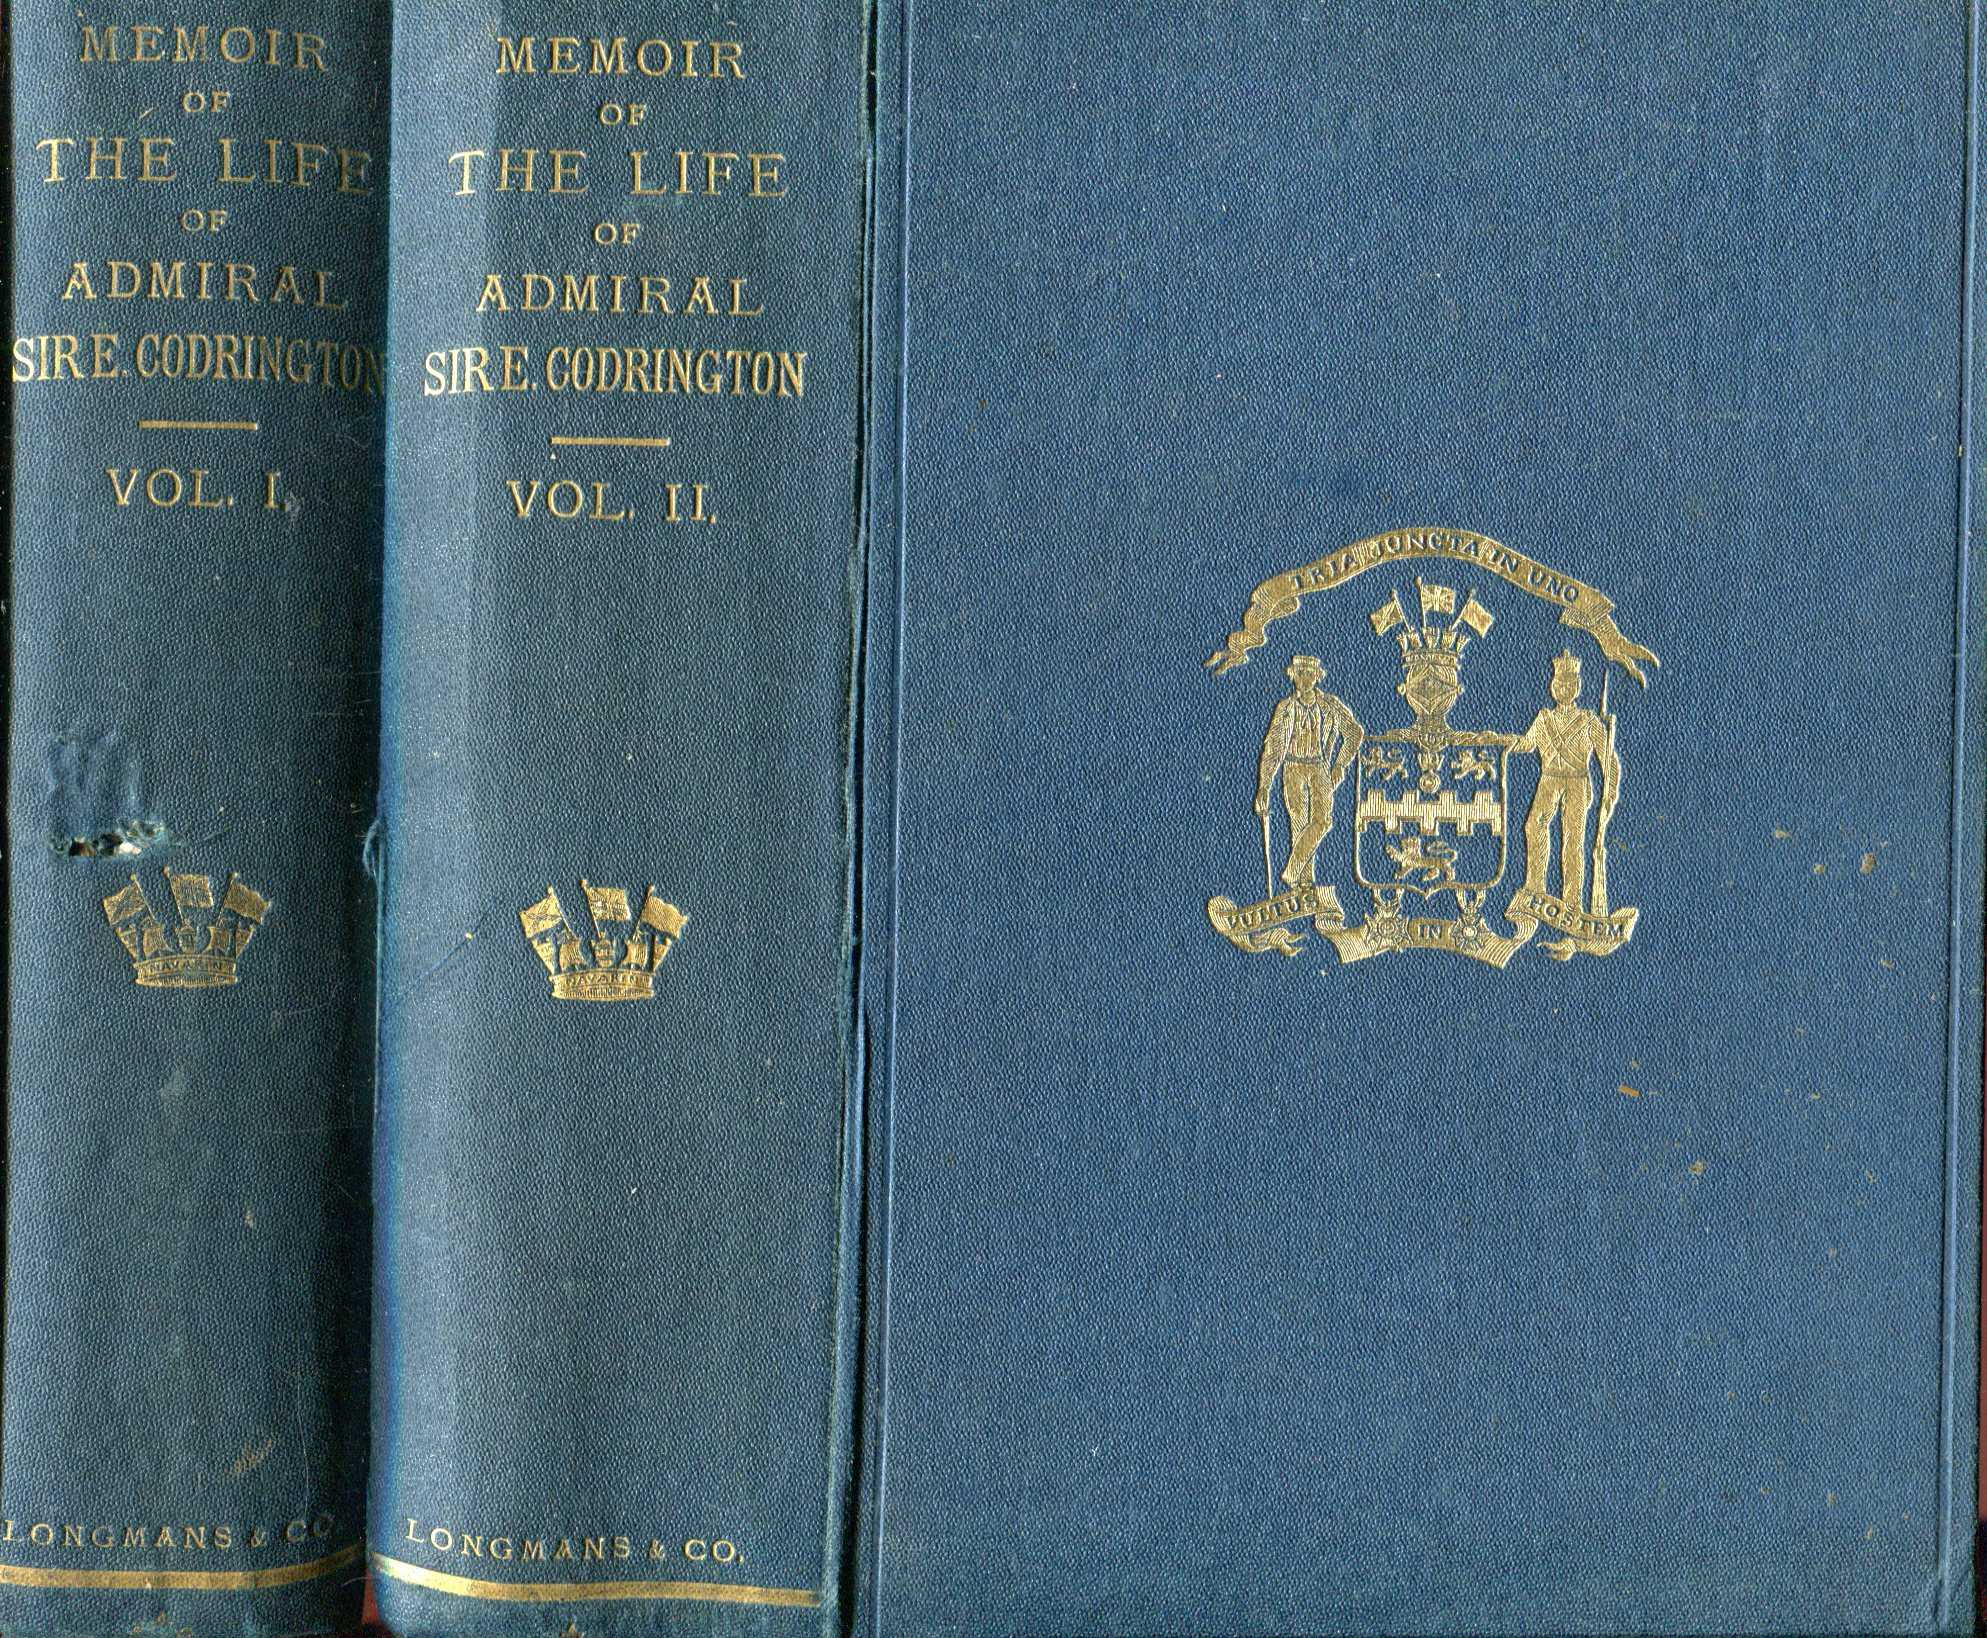 Image for Memoir of the Life of Admiral Sir Edward Codrington, with selections from his public and private correspondence (two volumes complete)